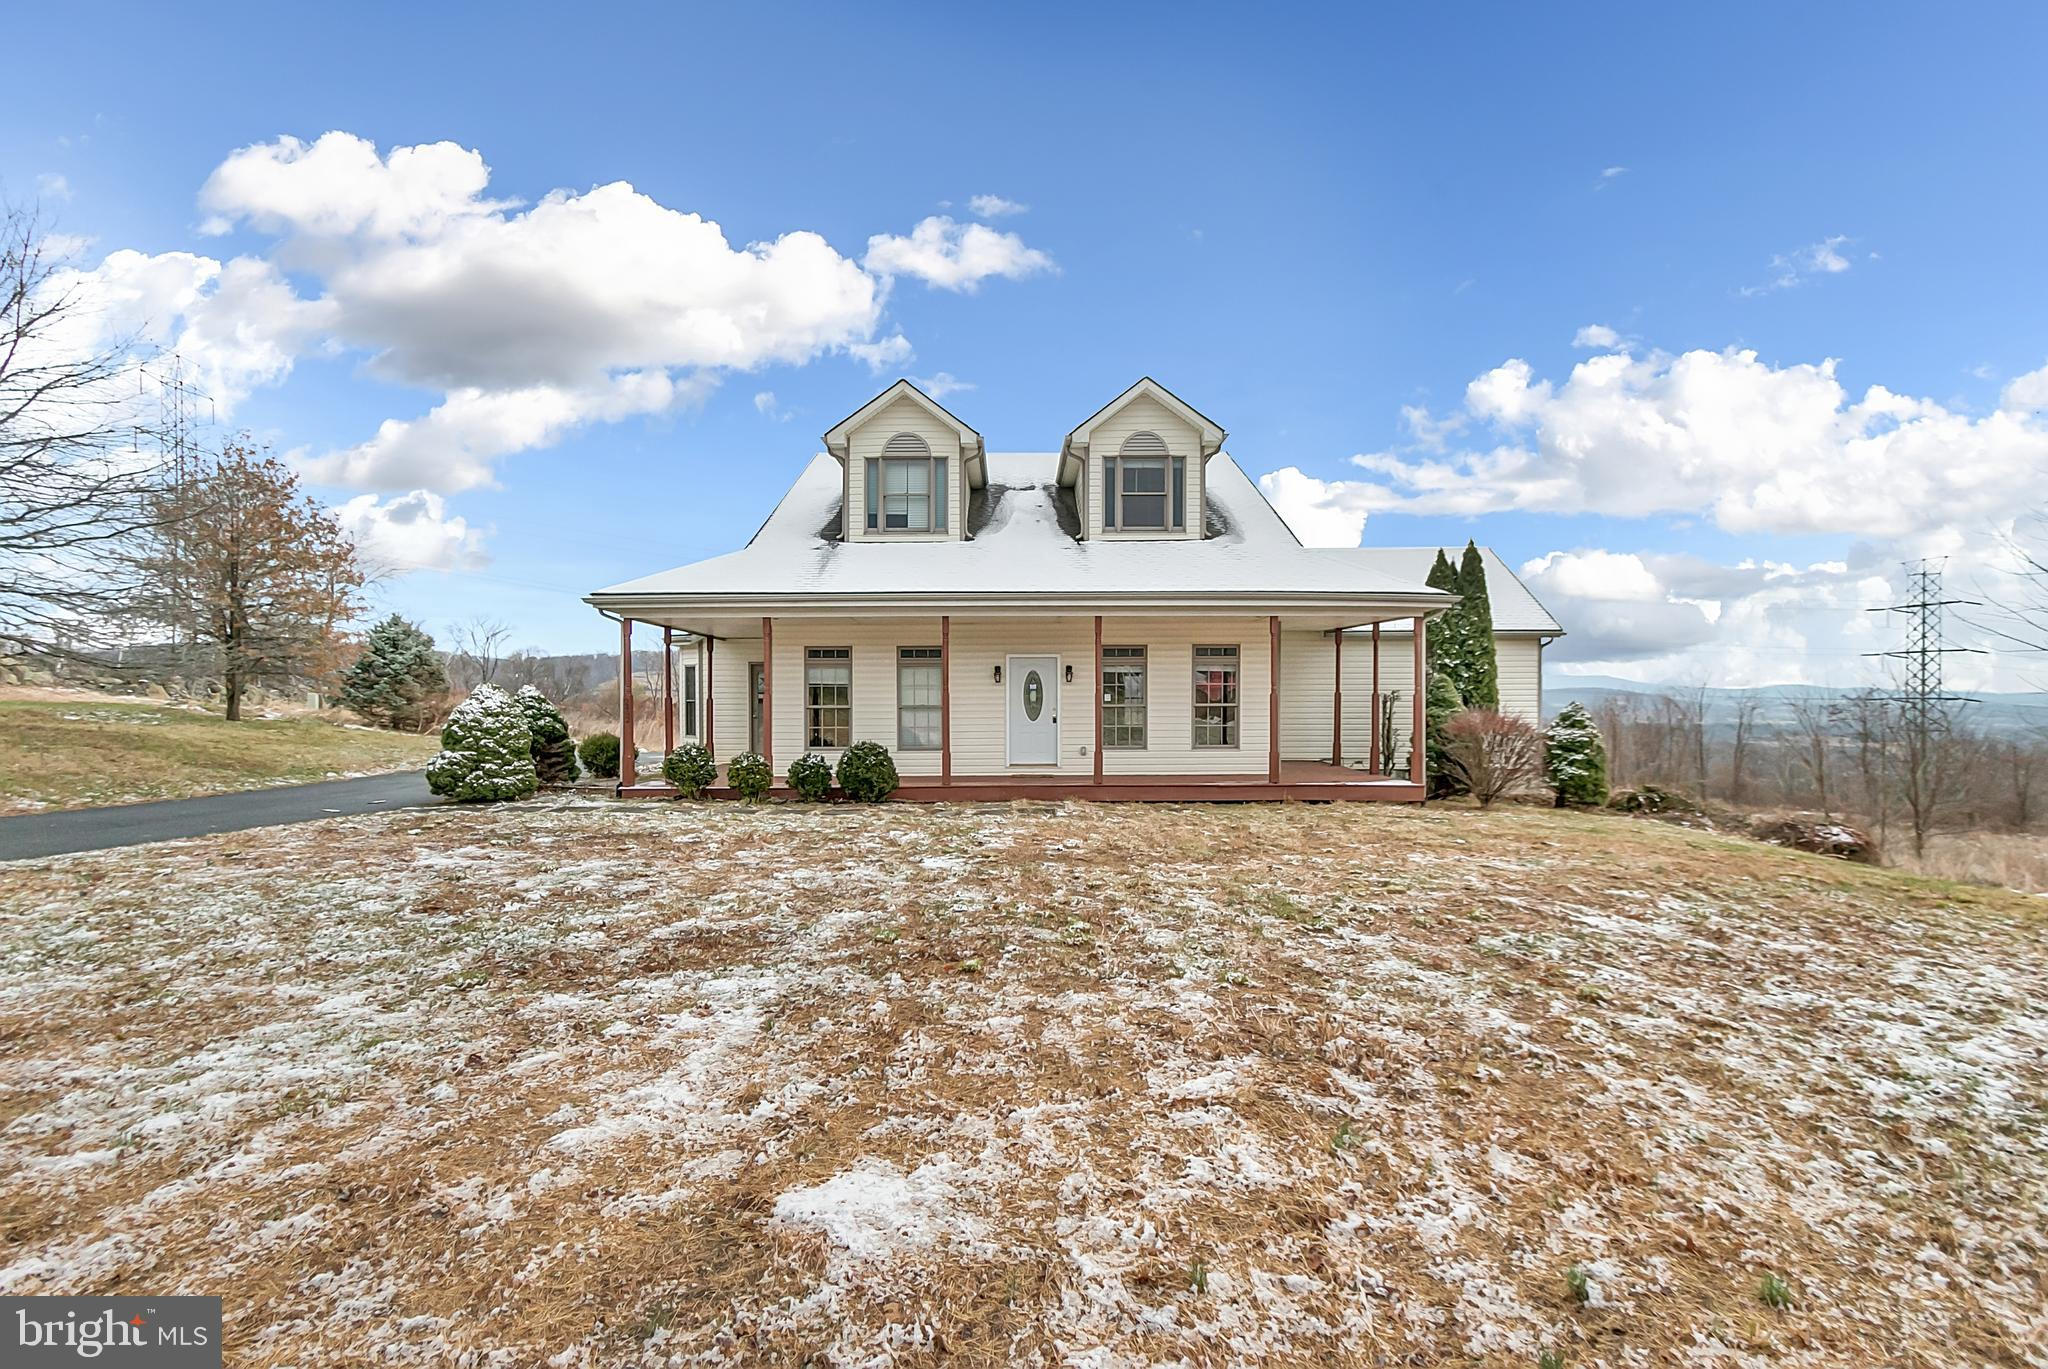 Beautiful Mountain Views! Property features: recently renovated interior, large kitchen with center